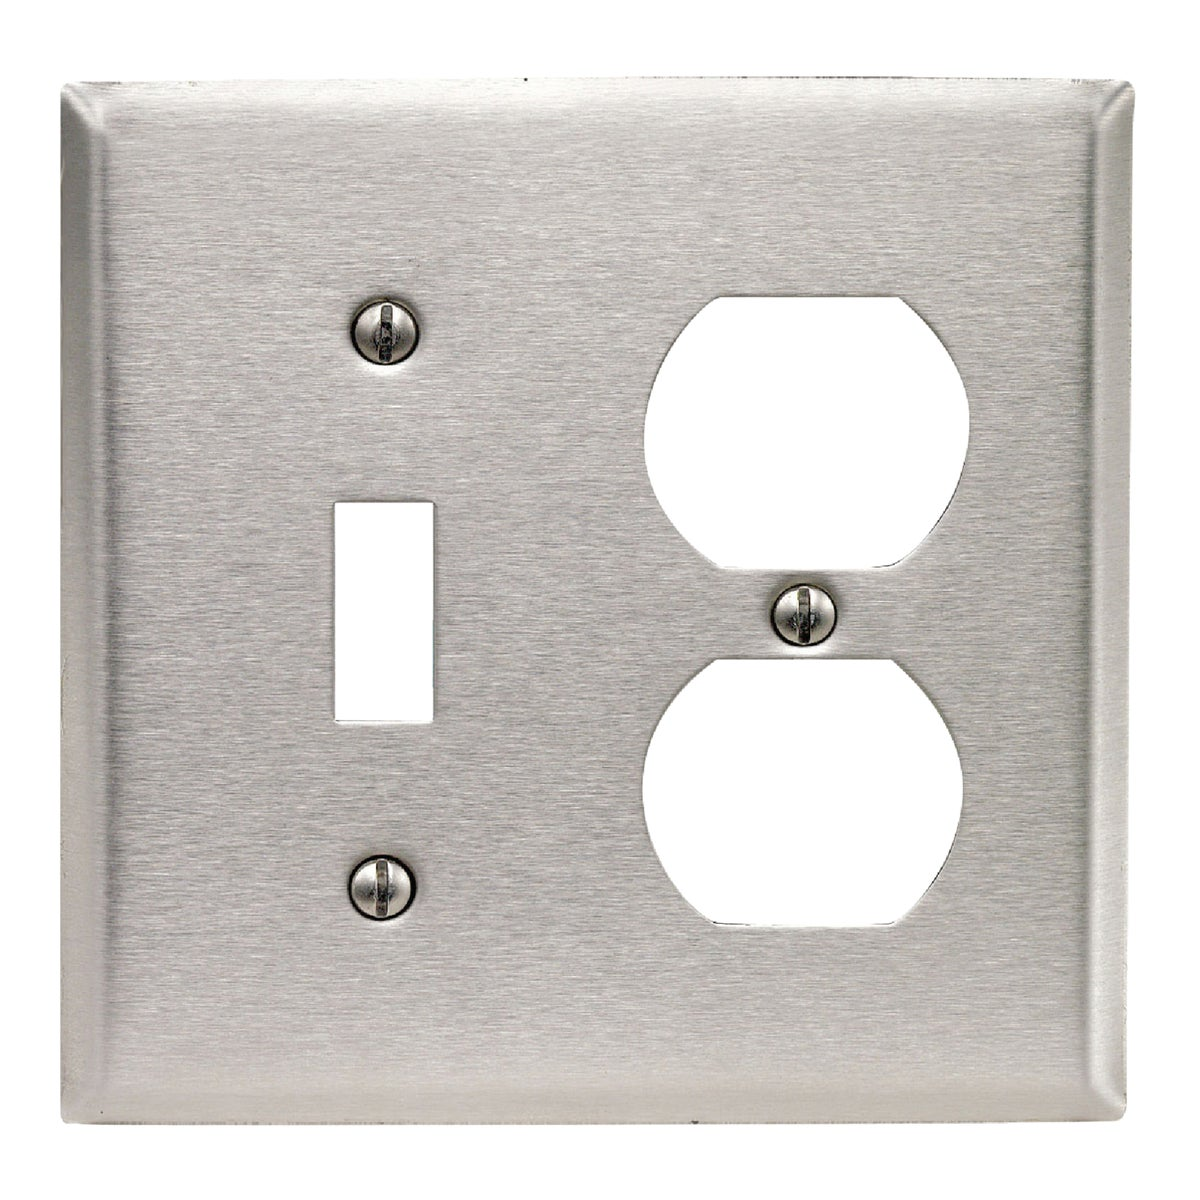 SS COMBO WALL PLATE - 84005 by Leviton Mfg Co